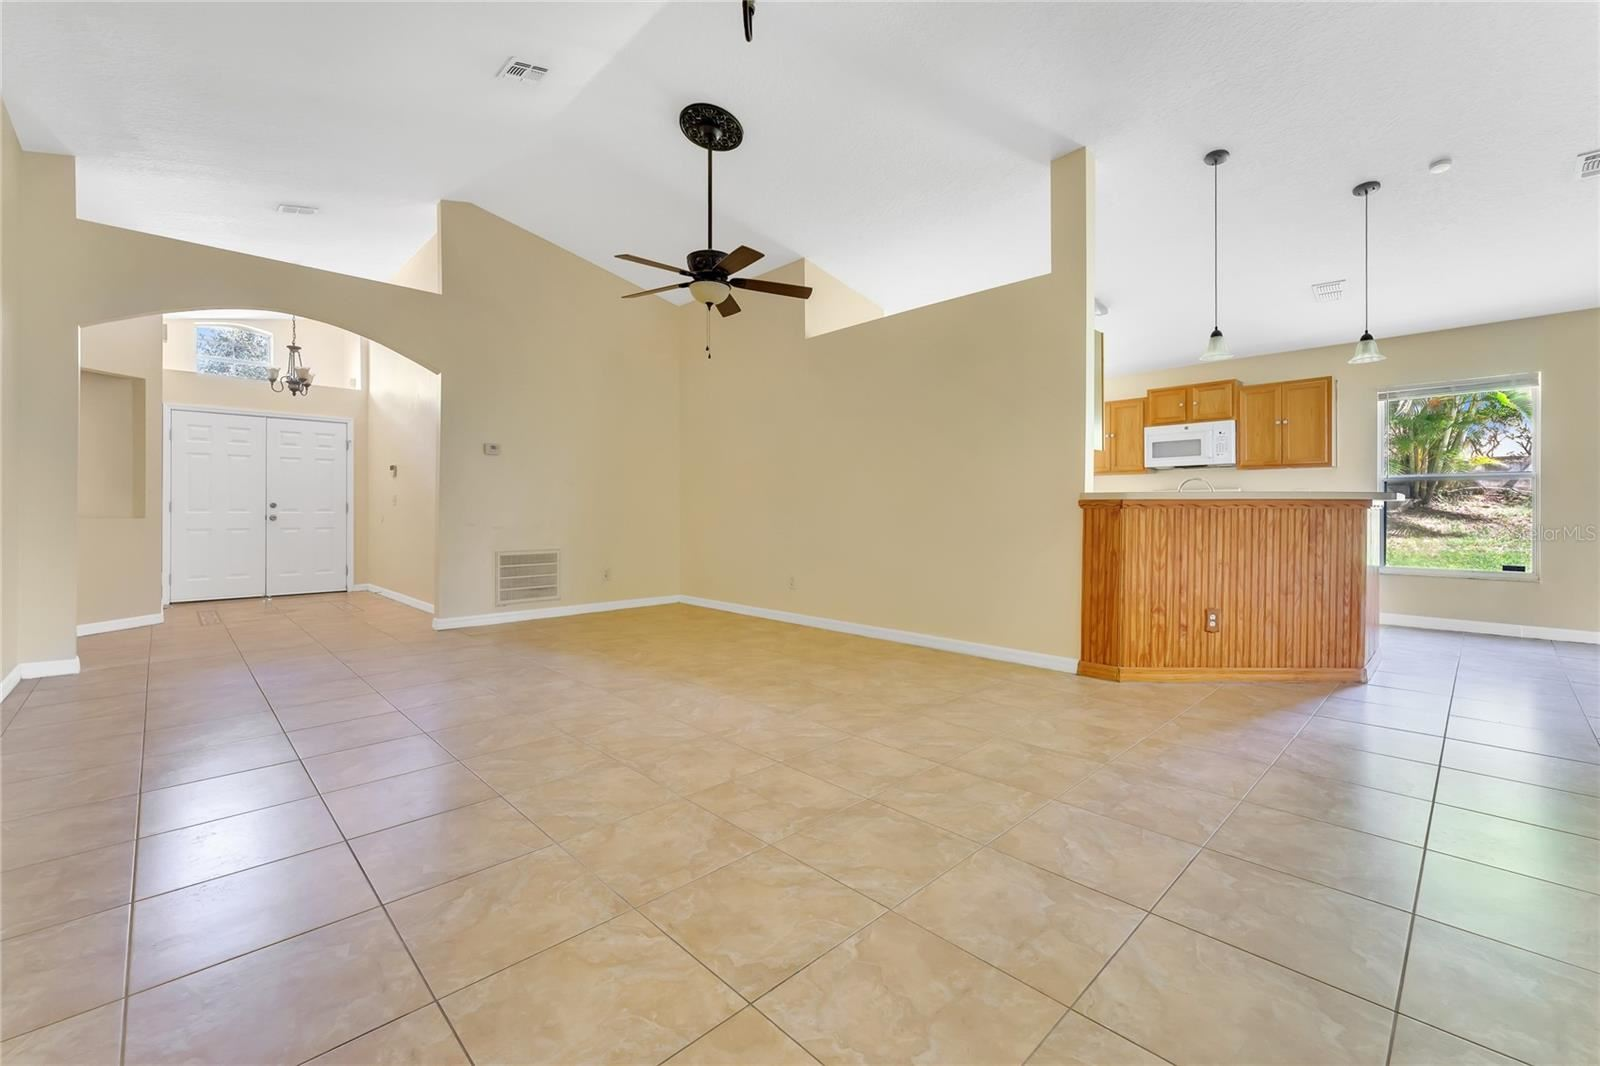 Photo of 1331 WILLOW CREST DRIVE, CLERMONT, FL 34711 (MLS # O5975348)